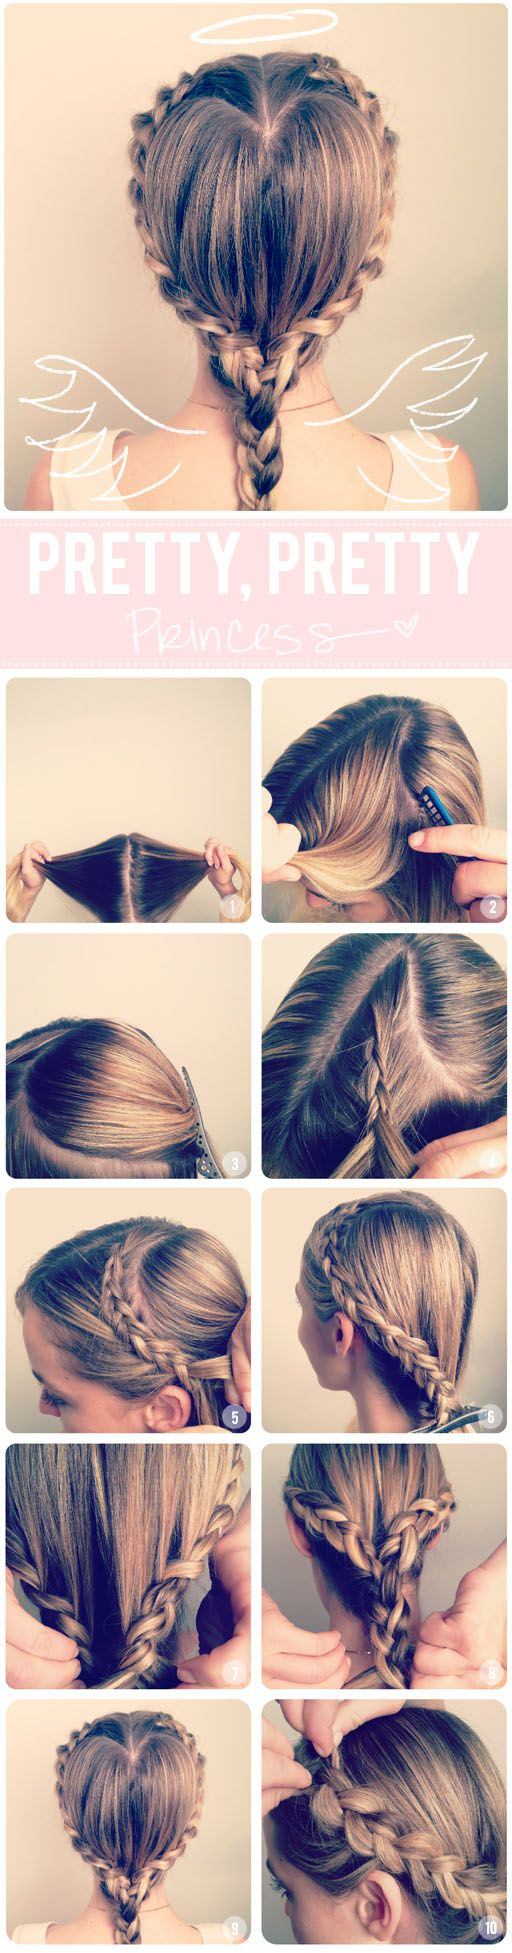 DIY Heart Braid Up-do Hairstyle ?